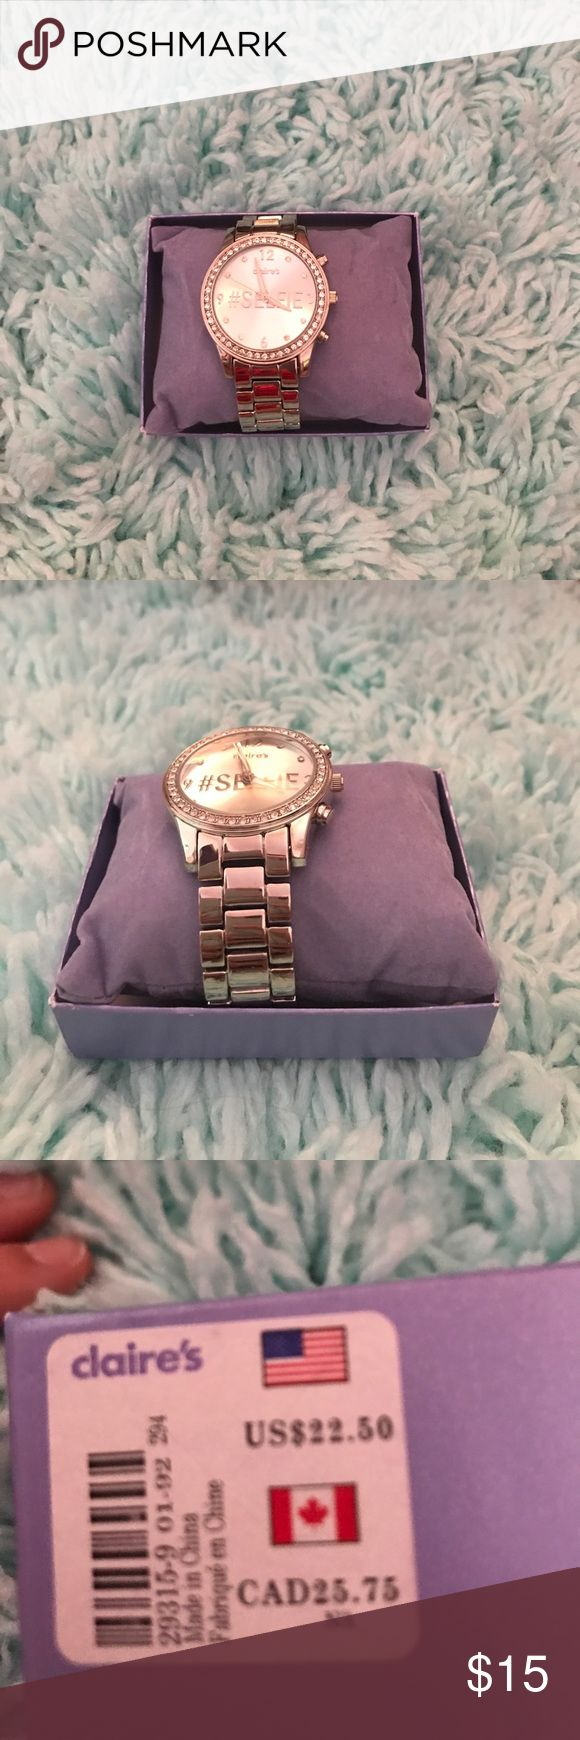 Claire's watch New, never worn with tags. Very shiny and works great Claire's Jewelry